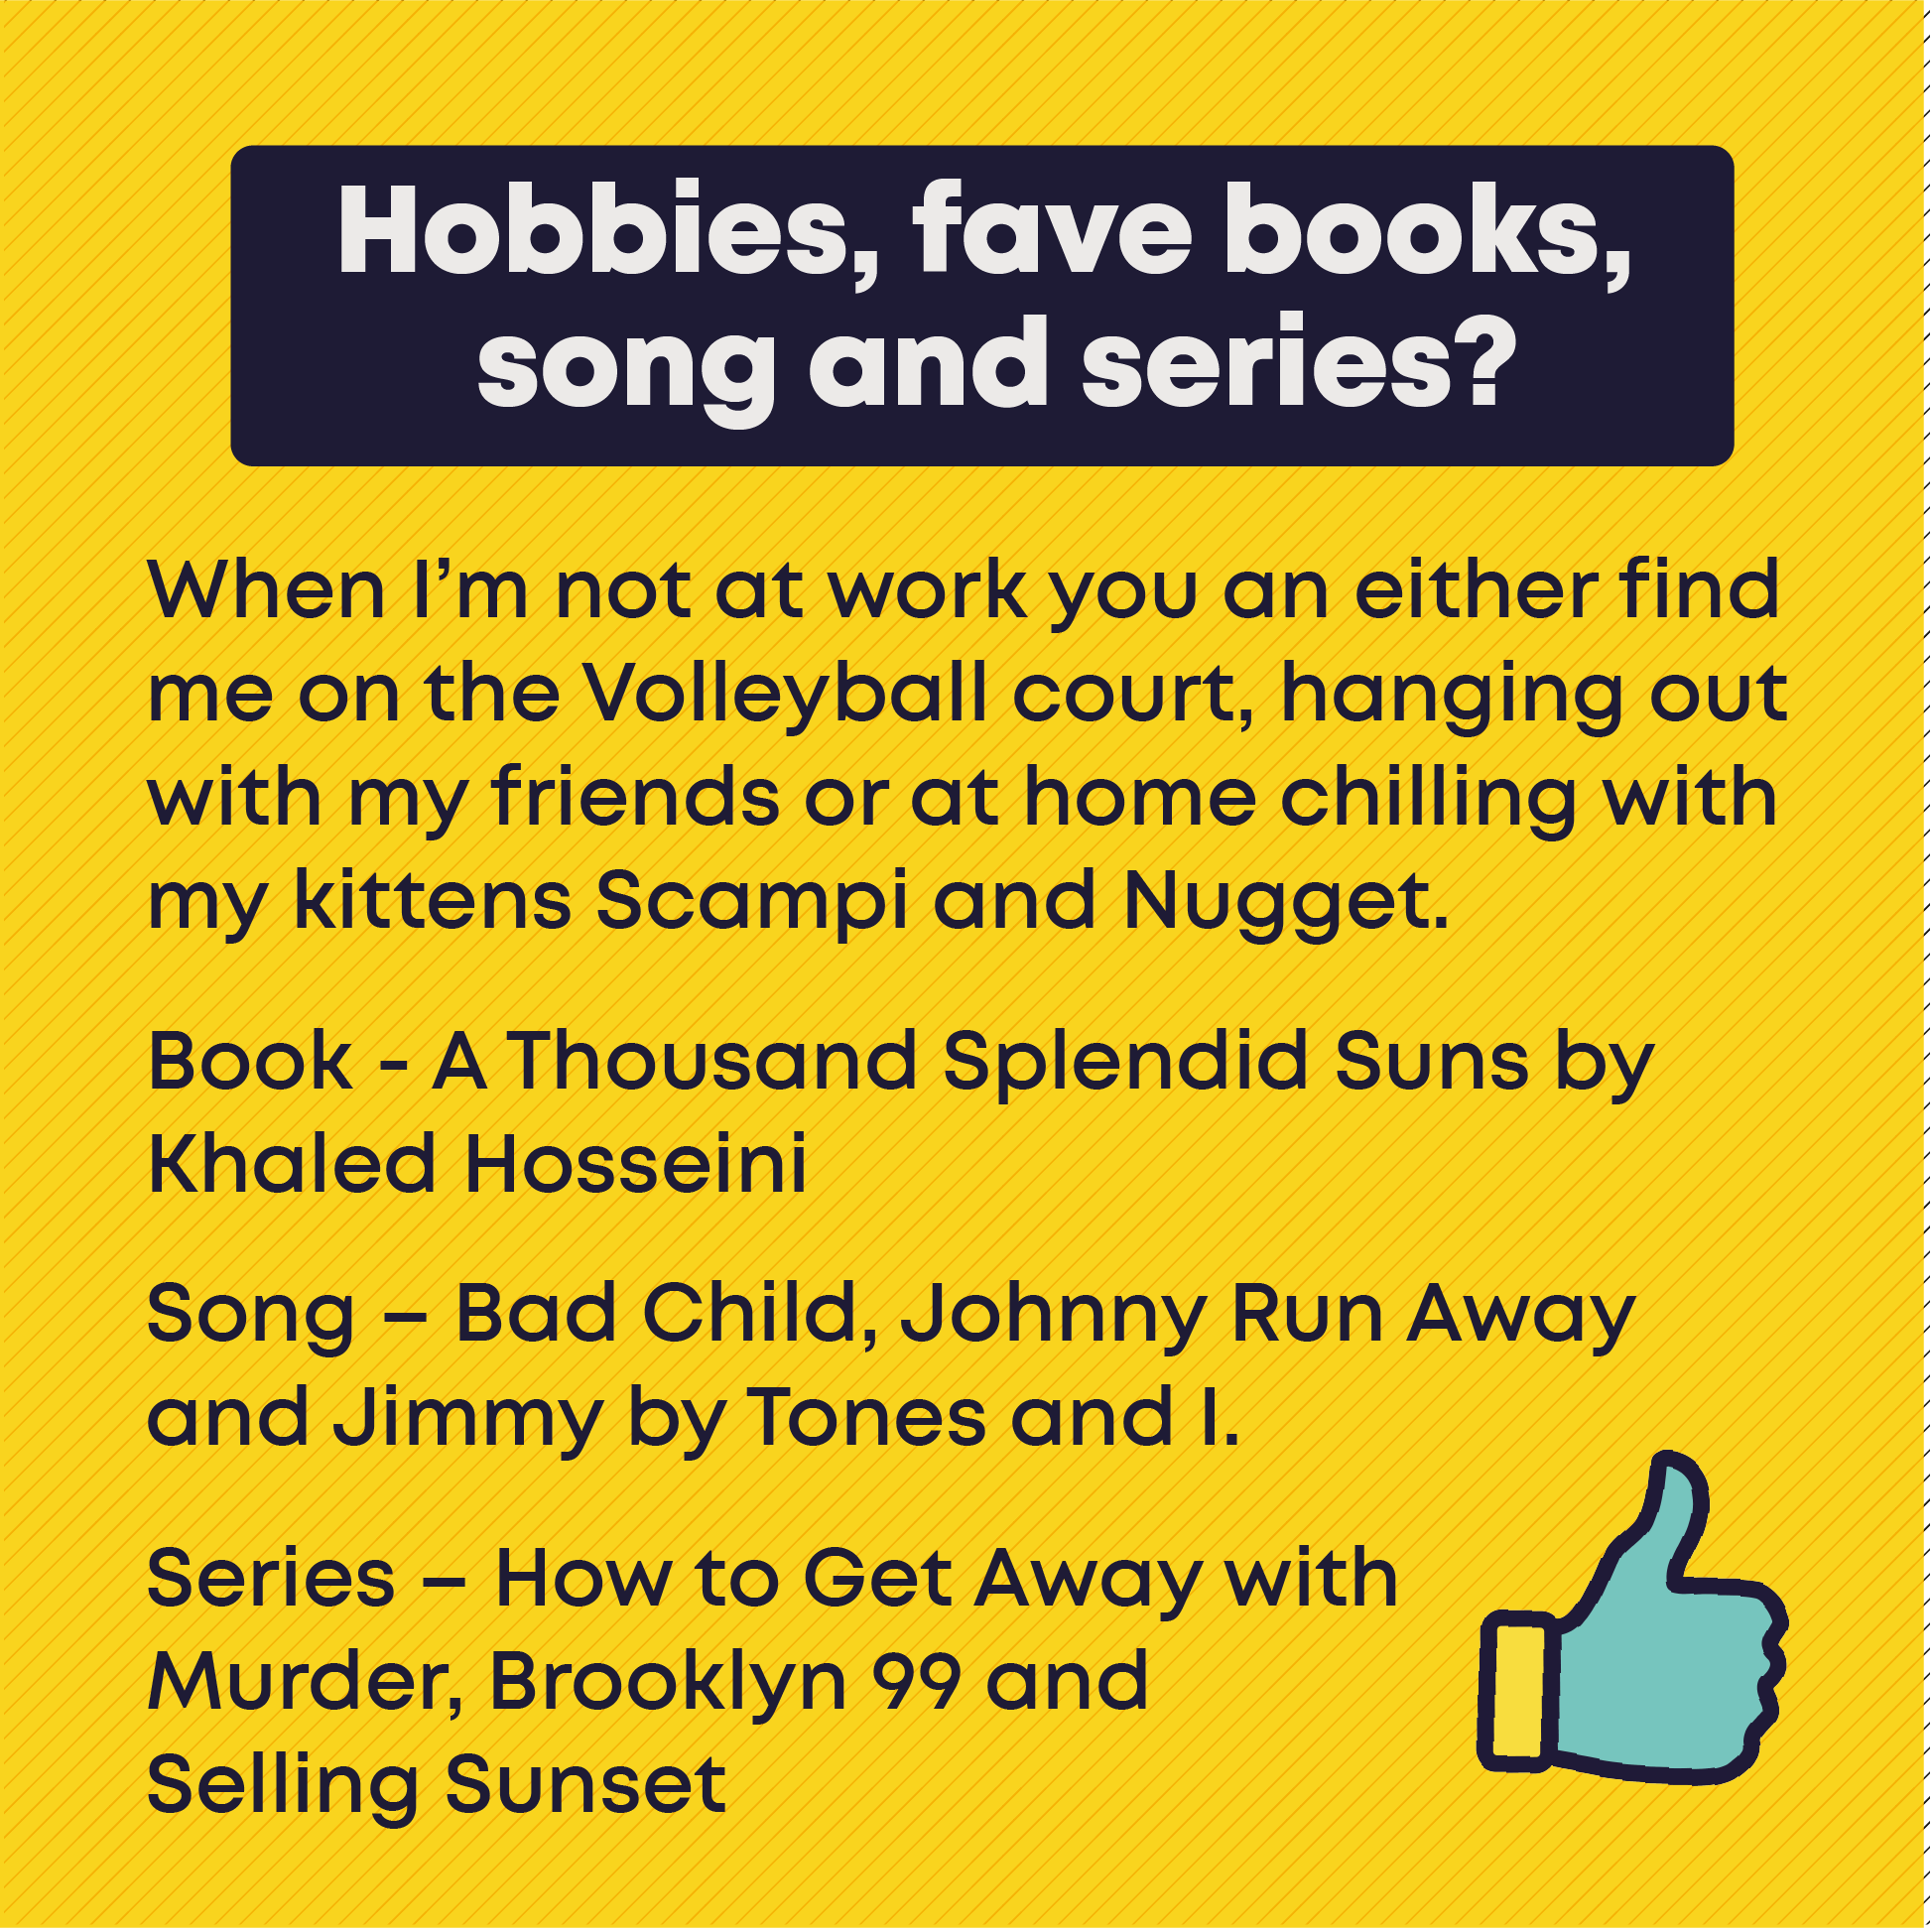 Hobbies & interests: When I'm not at work you an either find me on the Volleyball court, hanging out with my friends or at home chilling with my kittens Scampi and Nugget.  Book - A Thousand Splendid Suns by Khaled Hosseini. Song – Bad Child, Johnny Run Away and Jimmy by Tones and I. Series – How to Get Away with Murder, Brooklyn 99 and Selling Sunset